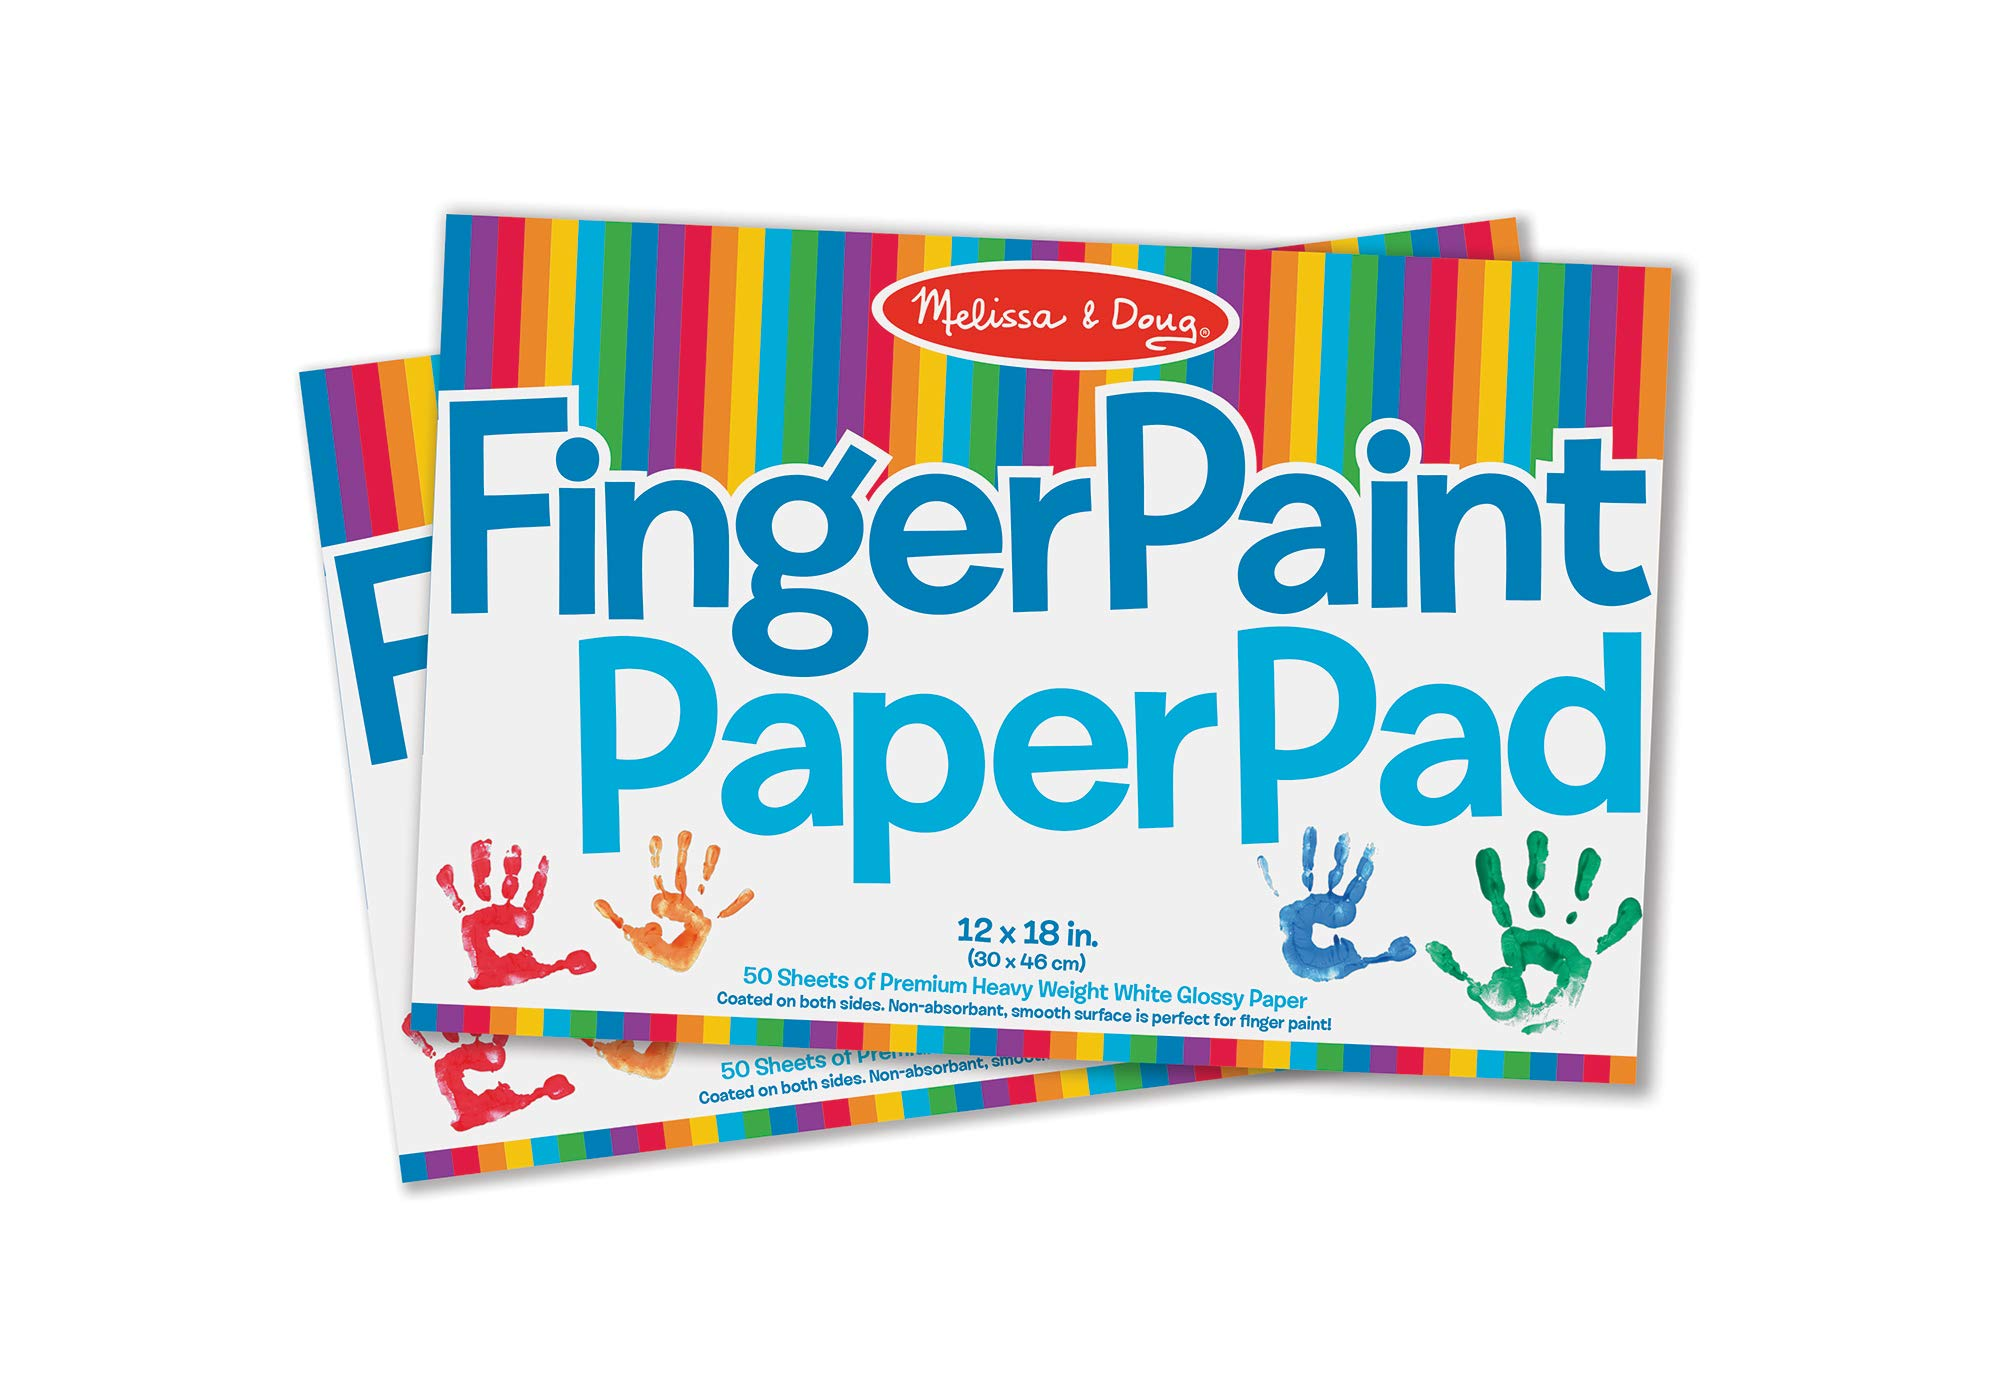 Melissa & Doug Finger-Paint Paper Pad 2-Pack (Arts & Crafts, Top-Bound Pads, Glossy Paper, Nonabsorbent, 50 Sheets Each, 17'' H x 12'' W x 0.25'' L) by Melissa & Doug